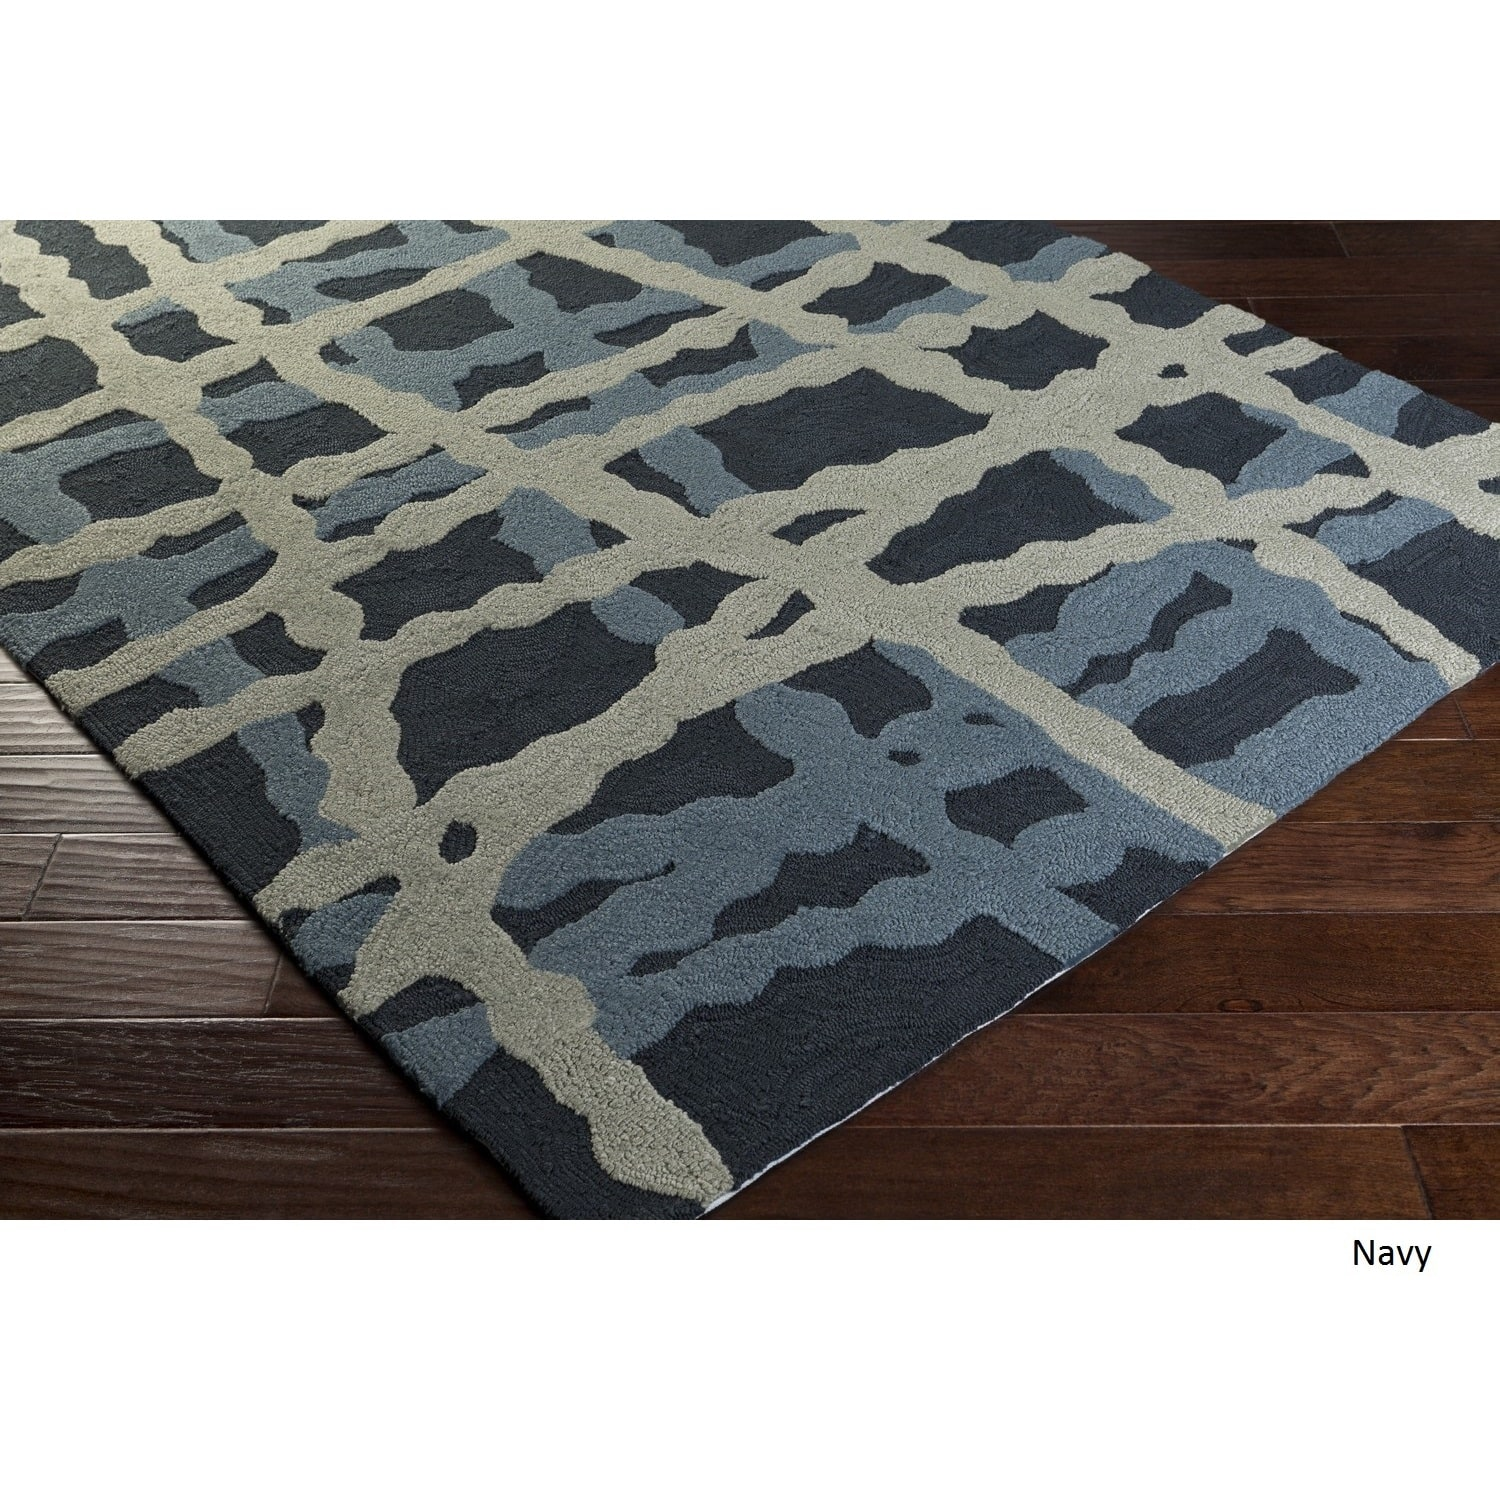 Buy 3x5 4x6 rugs online at our best area for Best selling rugs